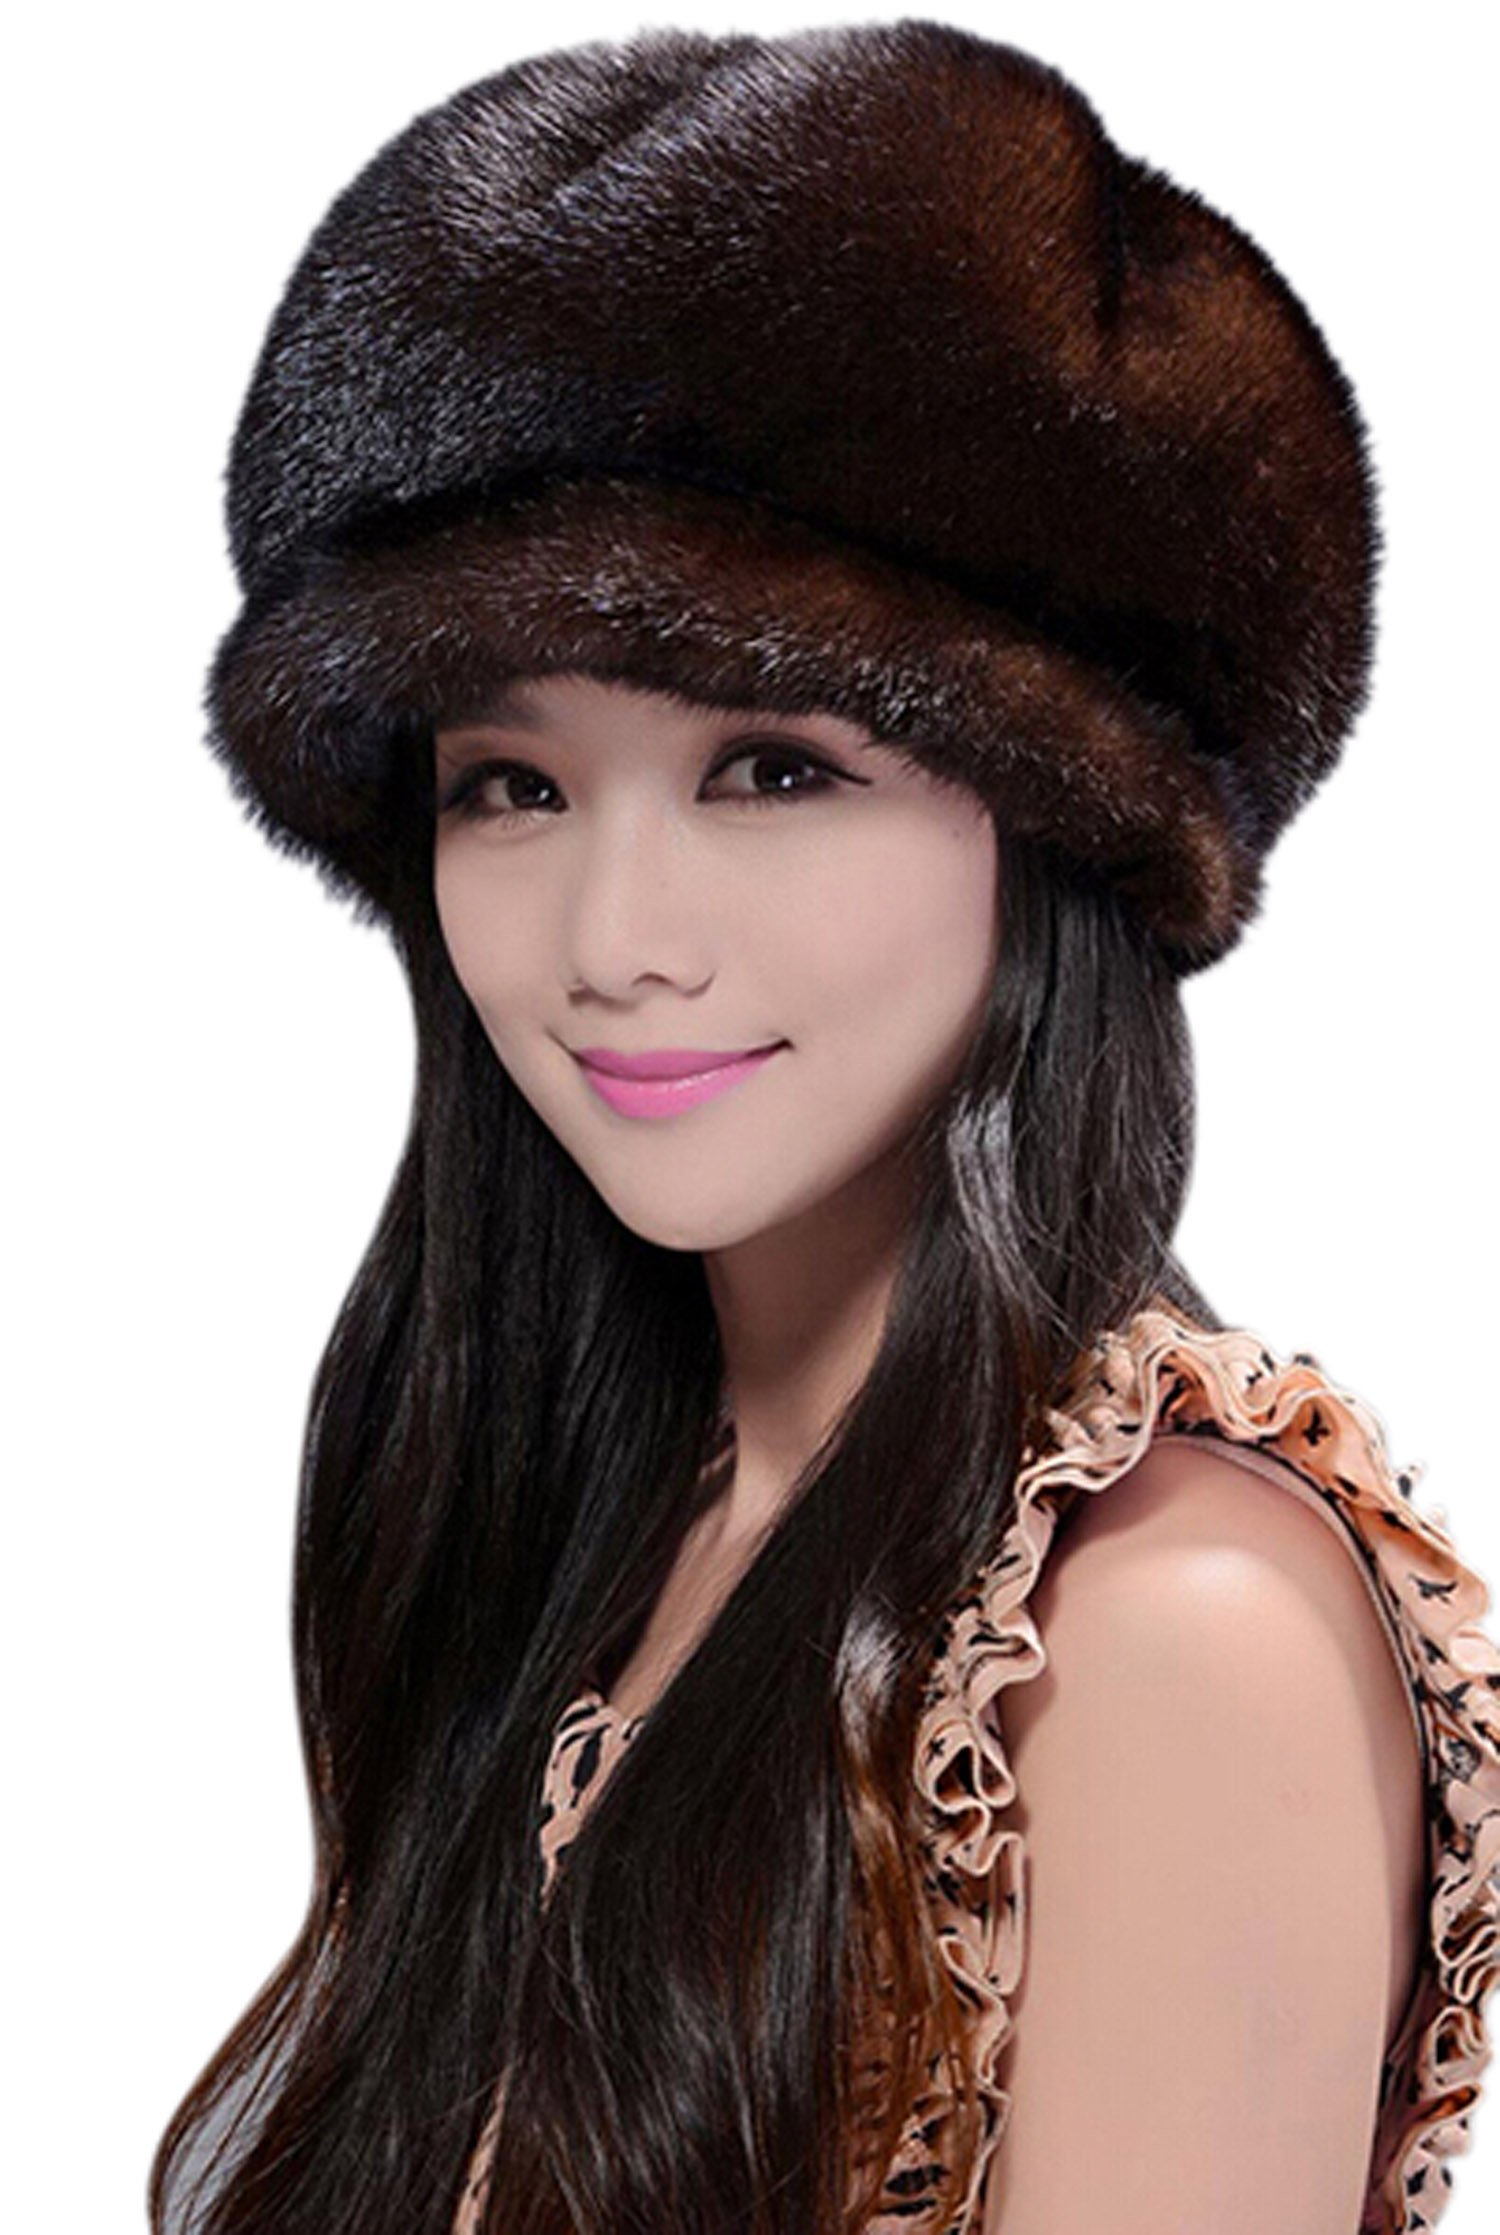 Easting New Fashion Women's 100% Real Genuine Mink Fur Cap (Dark Coffee) by Easting&co